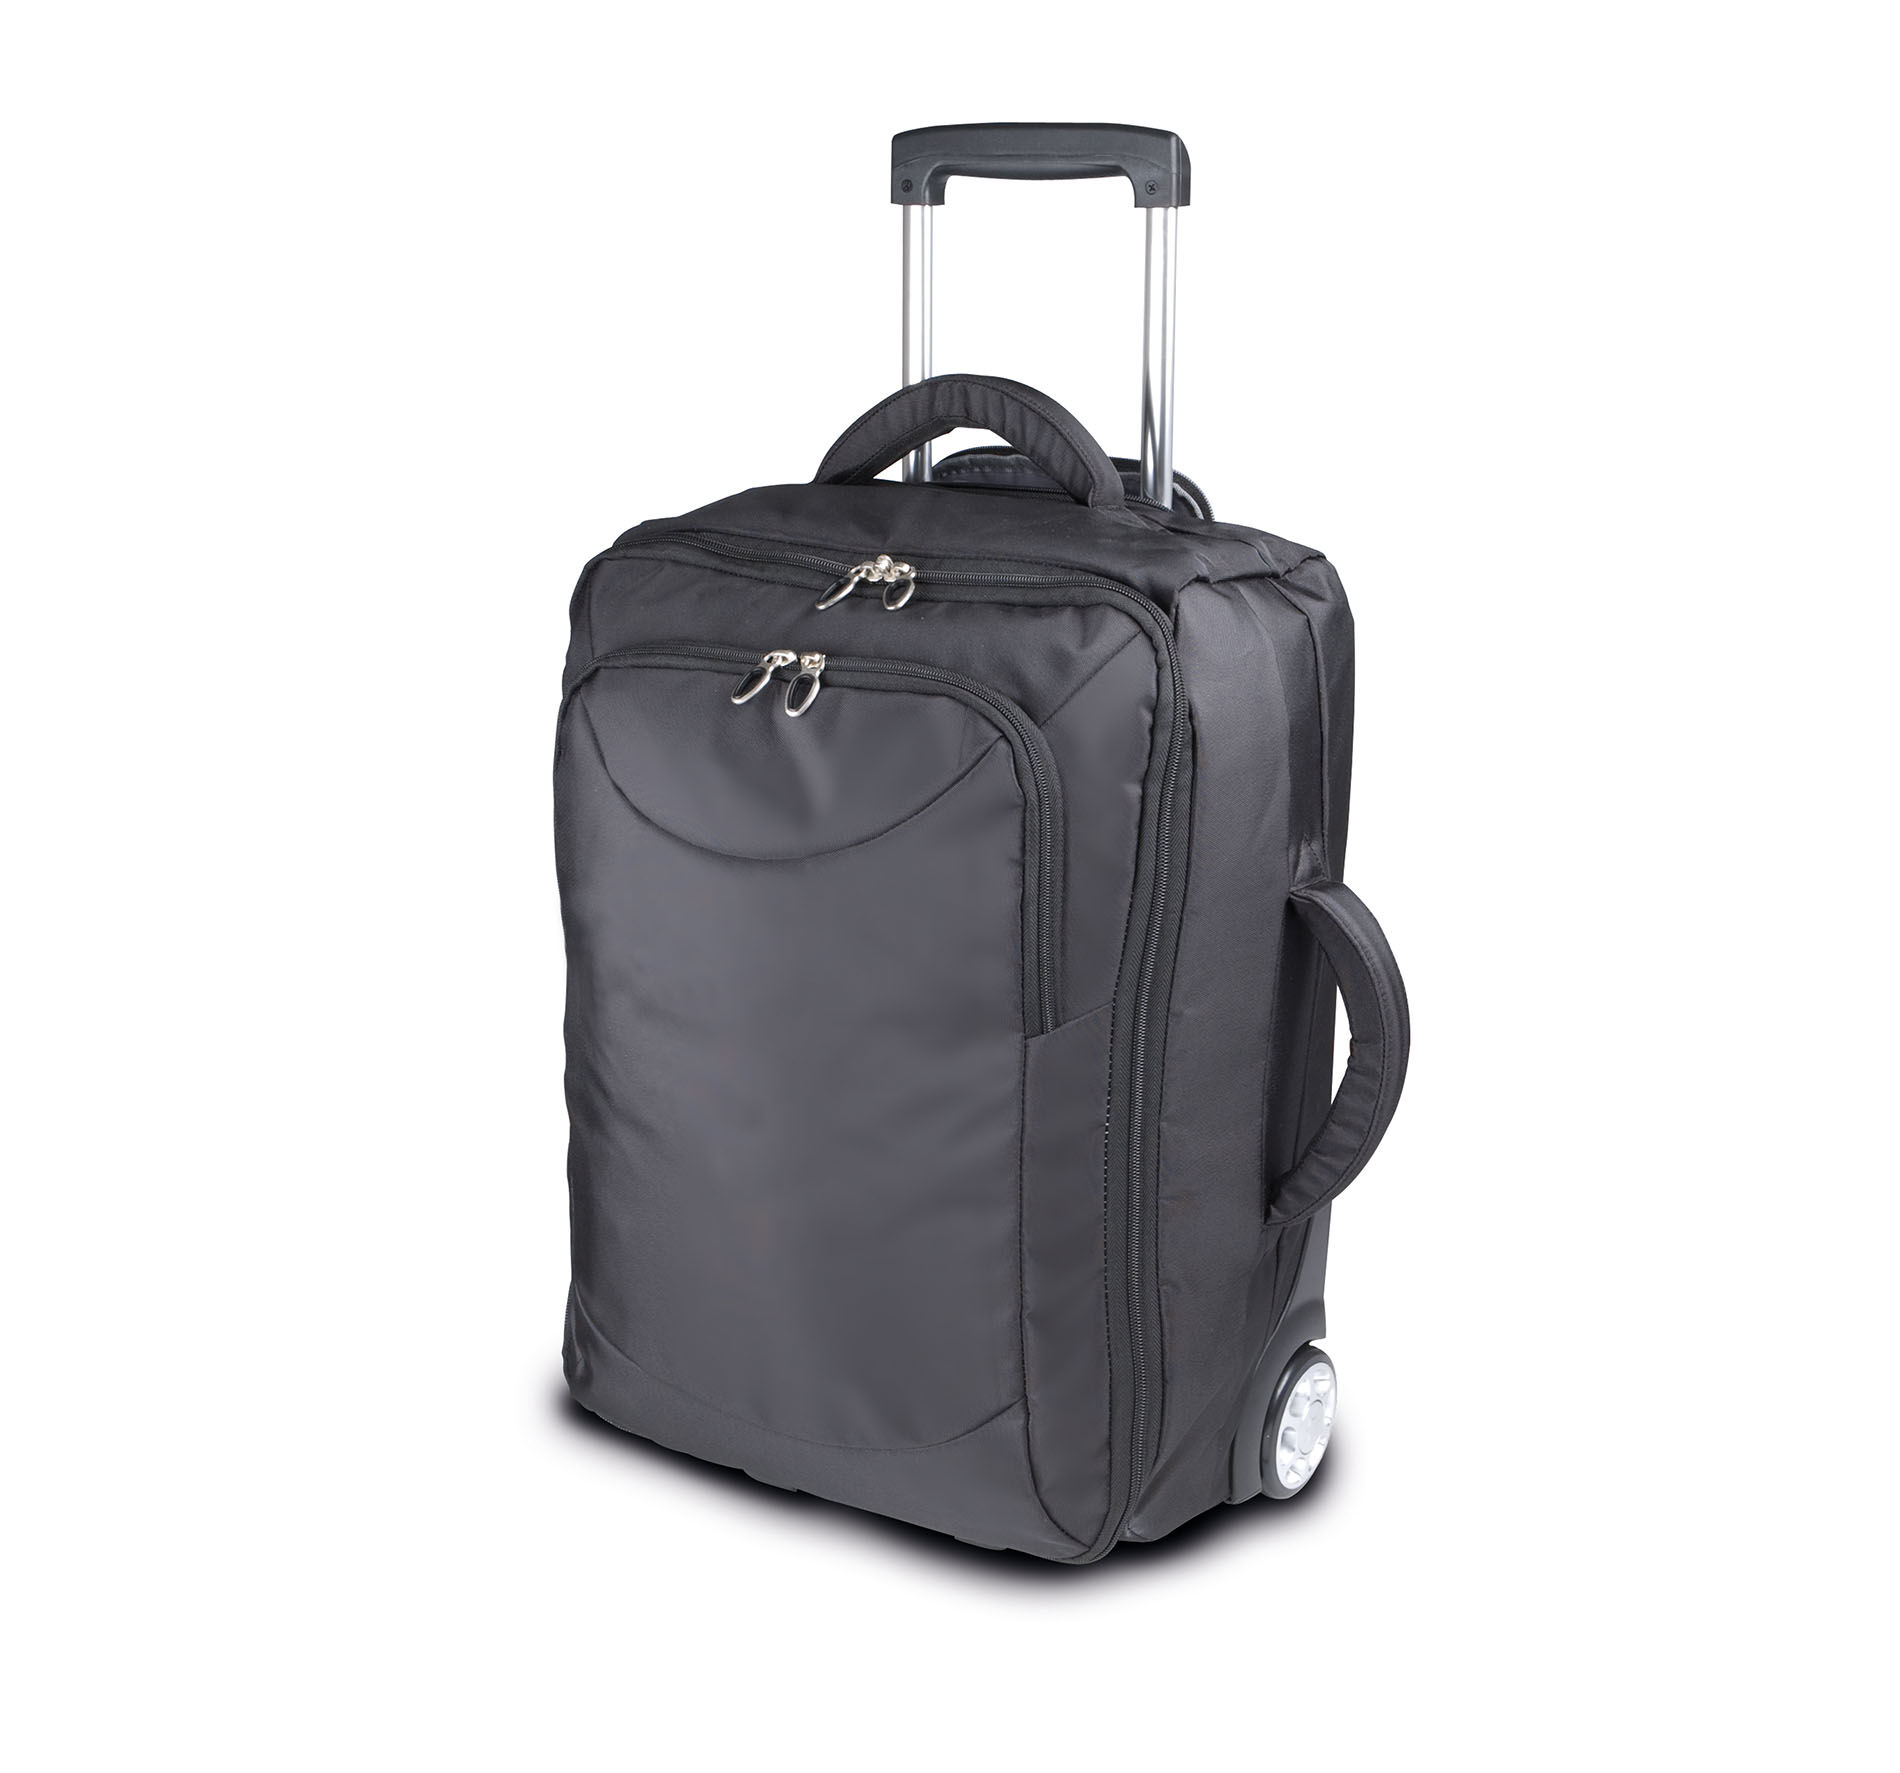 Valise roulettes cabine trolley black kimood - Valise roulette cabine ...